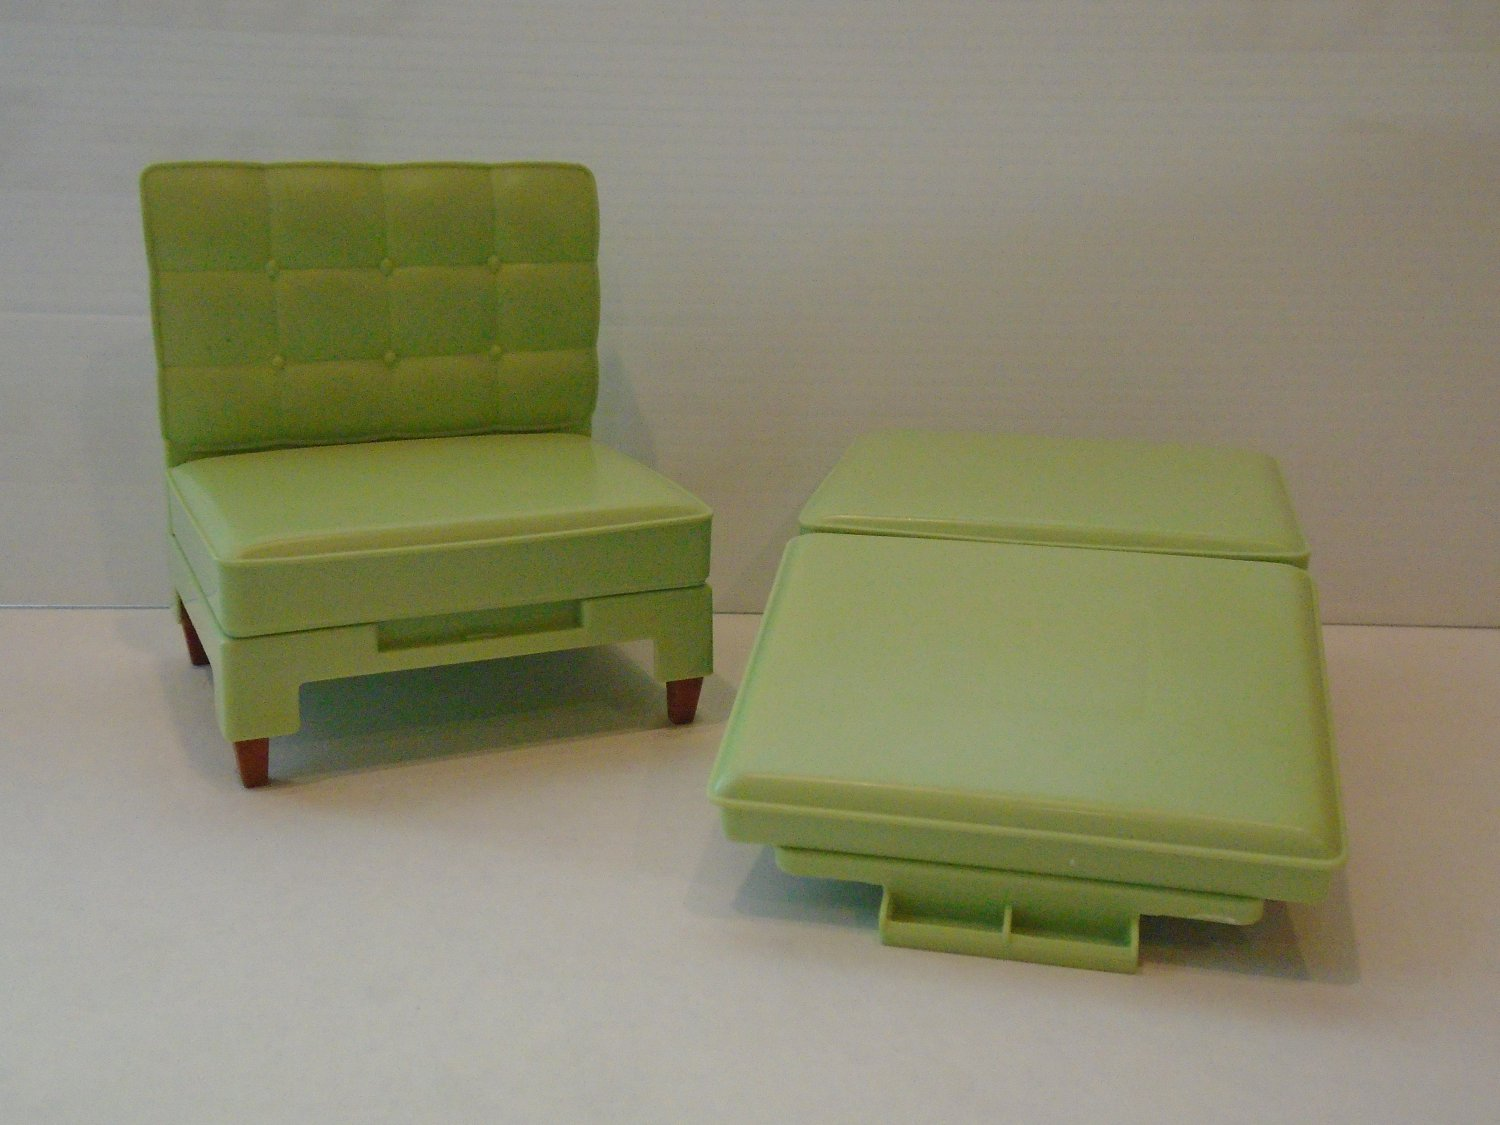 Chair That Converts To A Bed Vintage Barbie Green Chair And Ottoman Converts To Bed Clb 968